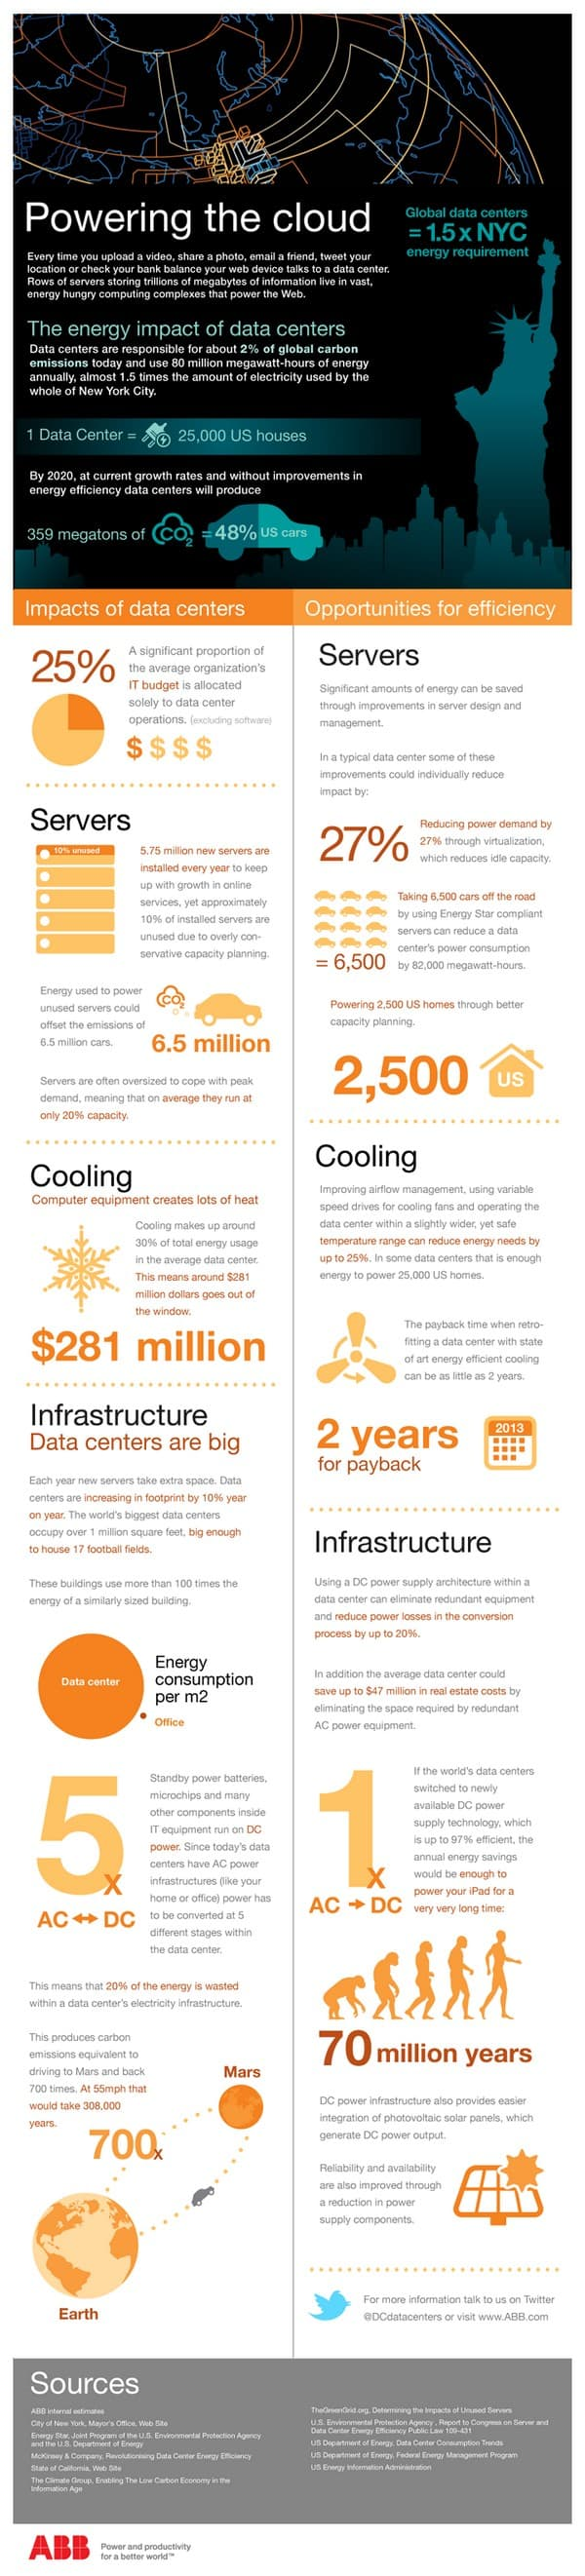 Infographic Powering the cloud